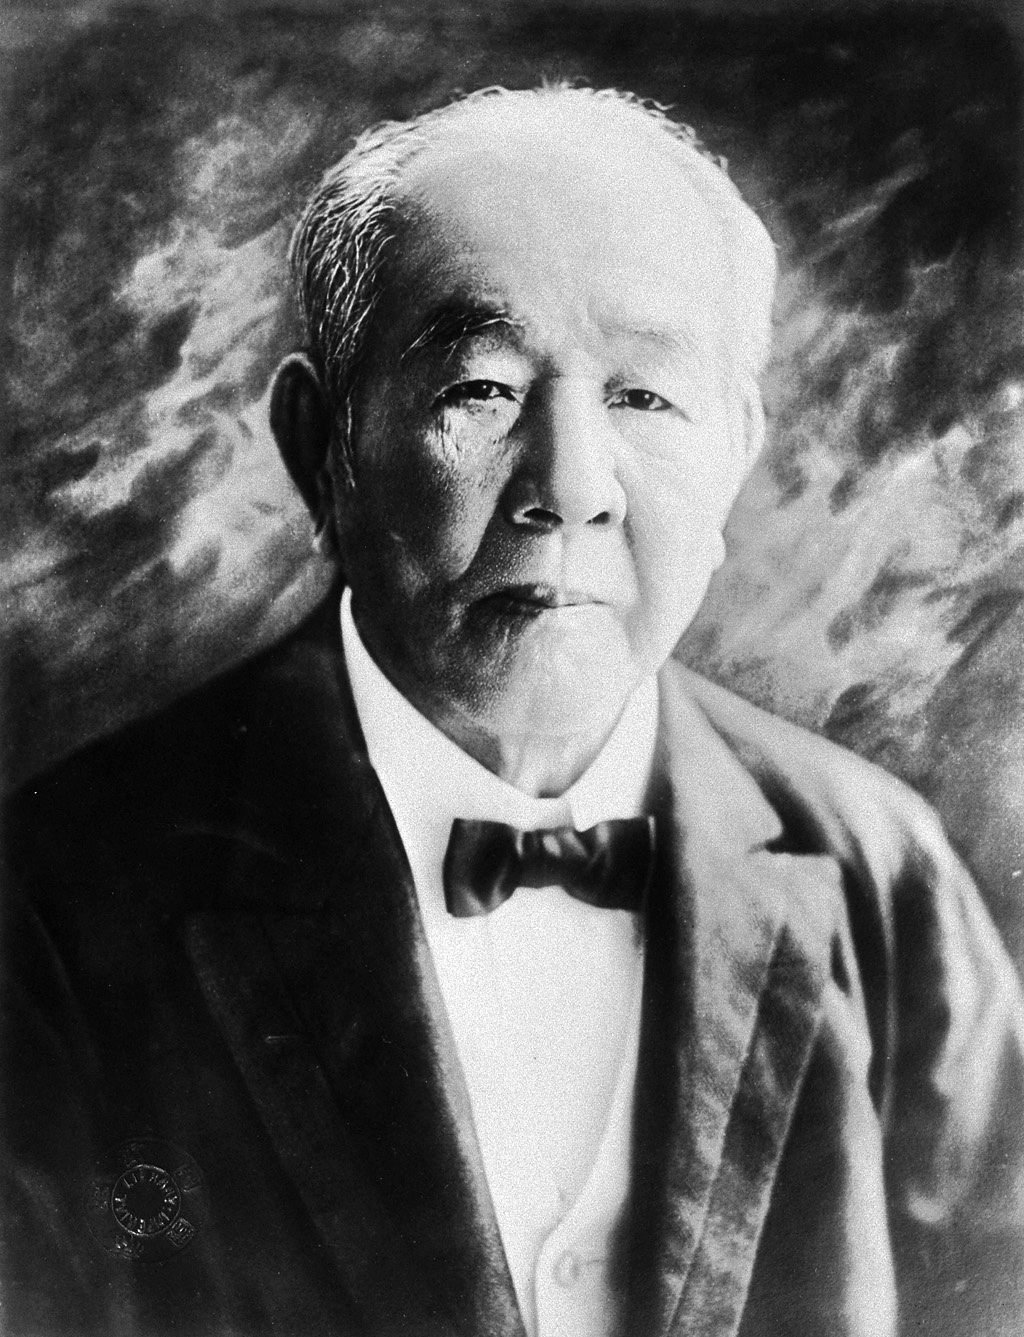 https://upload.wikimedia.org/wikipedia/commons/3/38/Eiichi_Shibusawa.jpg